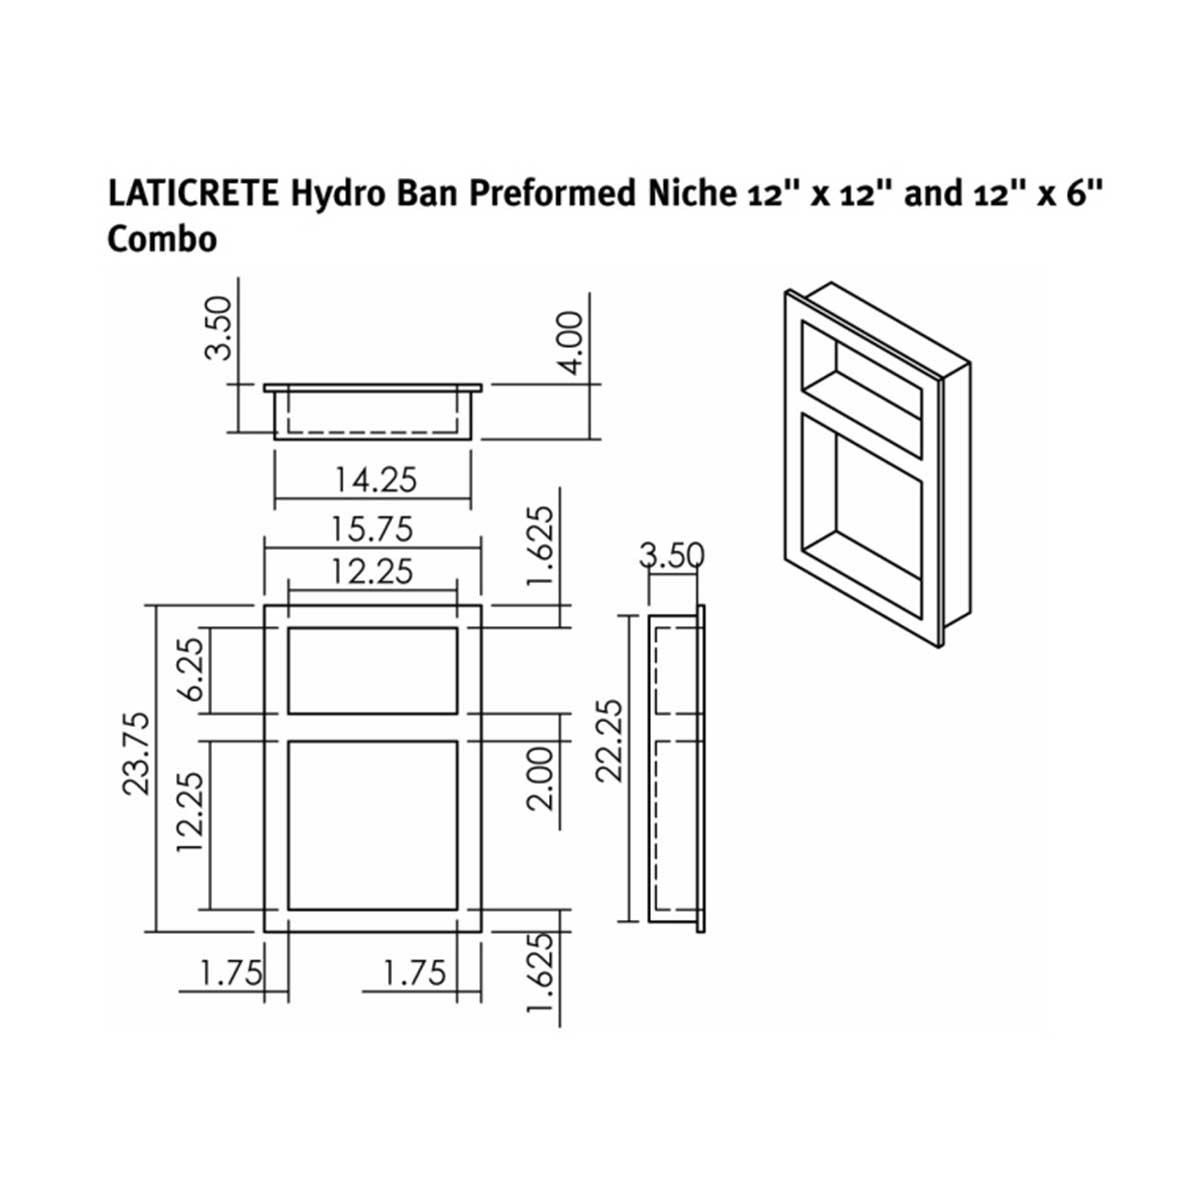 hydroban, shower niche, laticrete